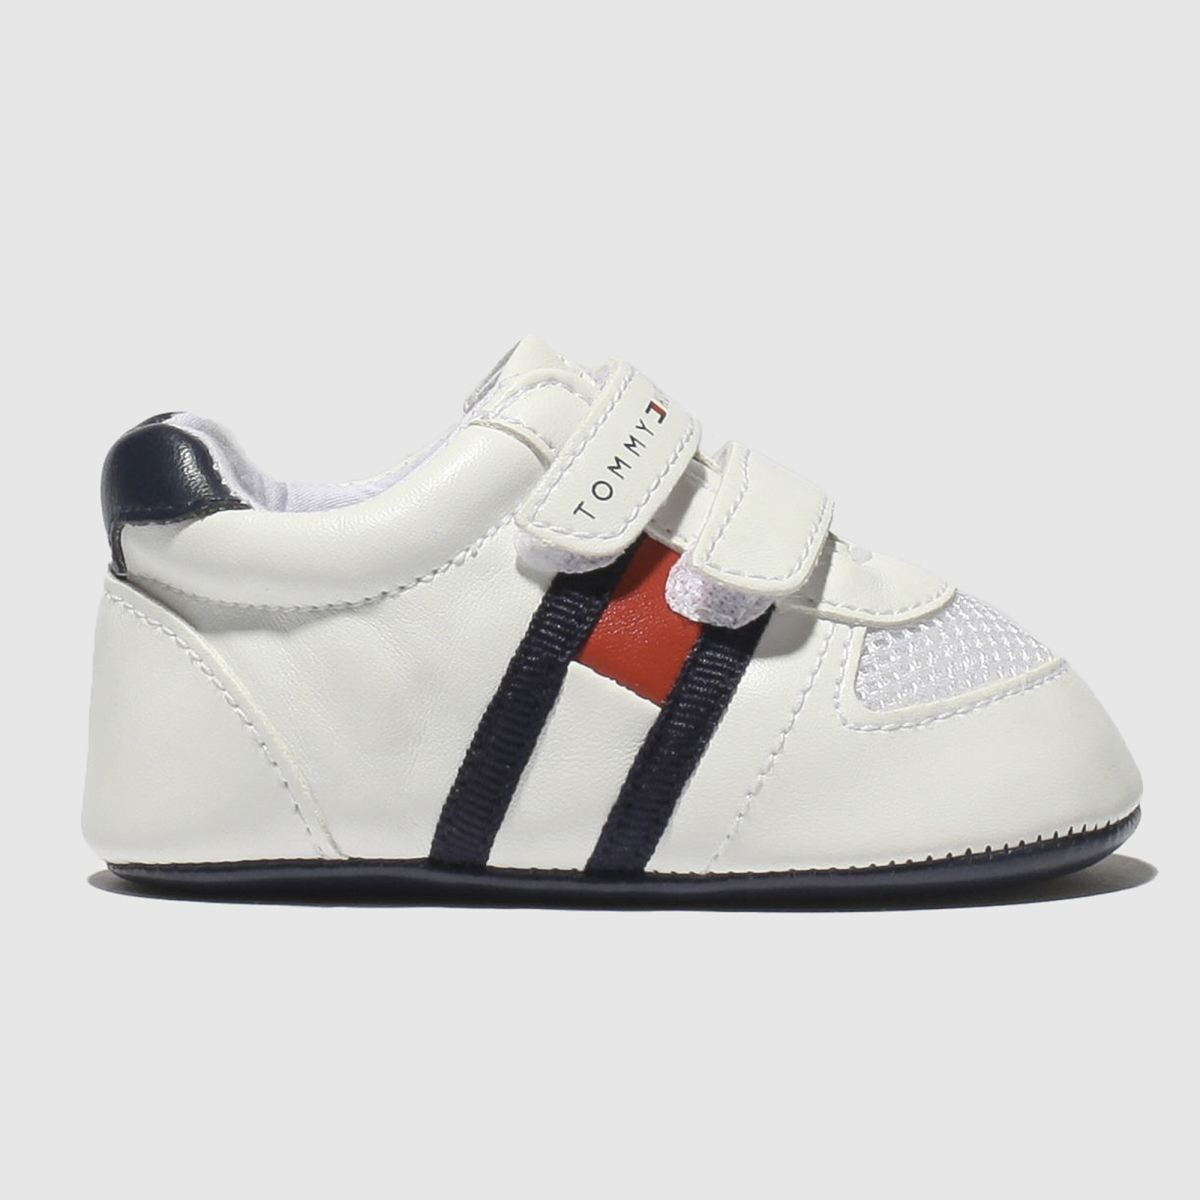 Tommy Hilfiger White & Navy Velcro Classic Crib Shoes Baby